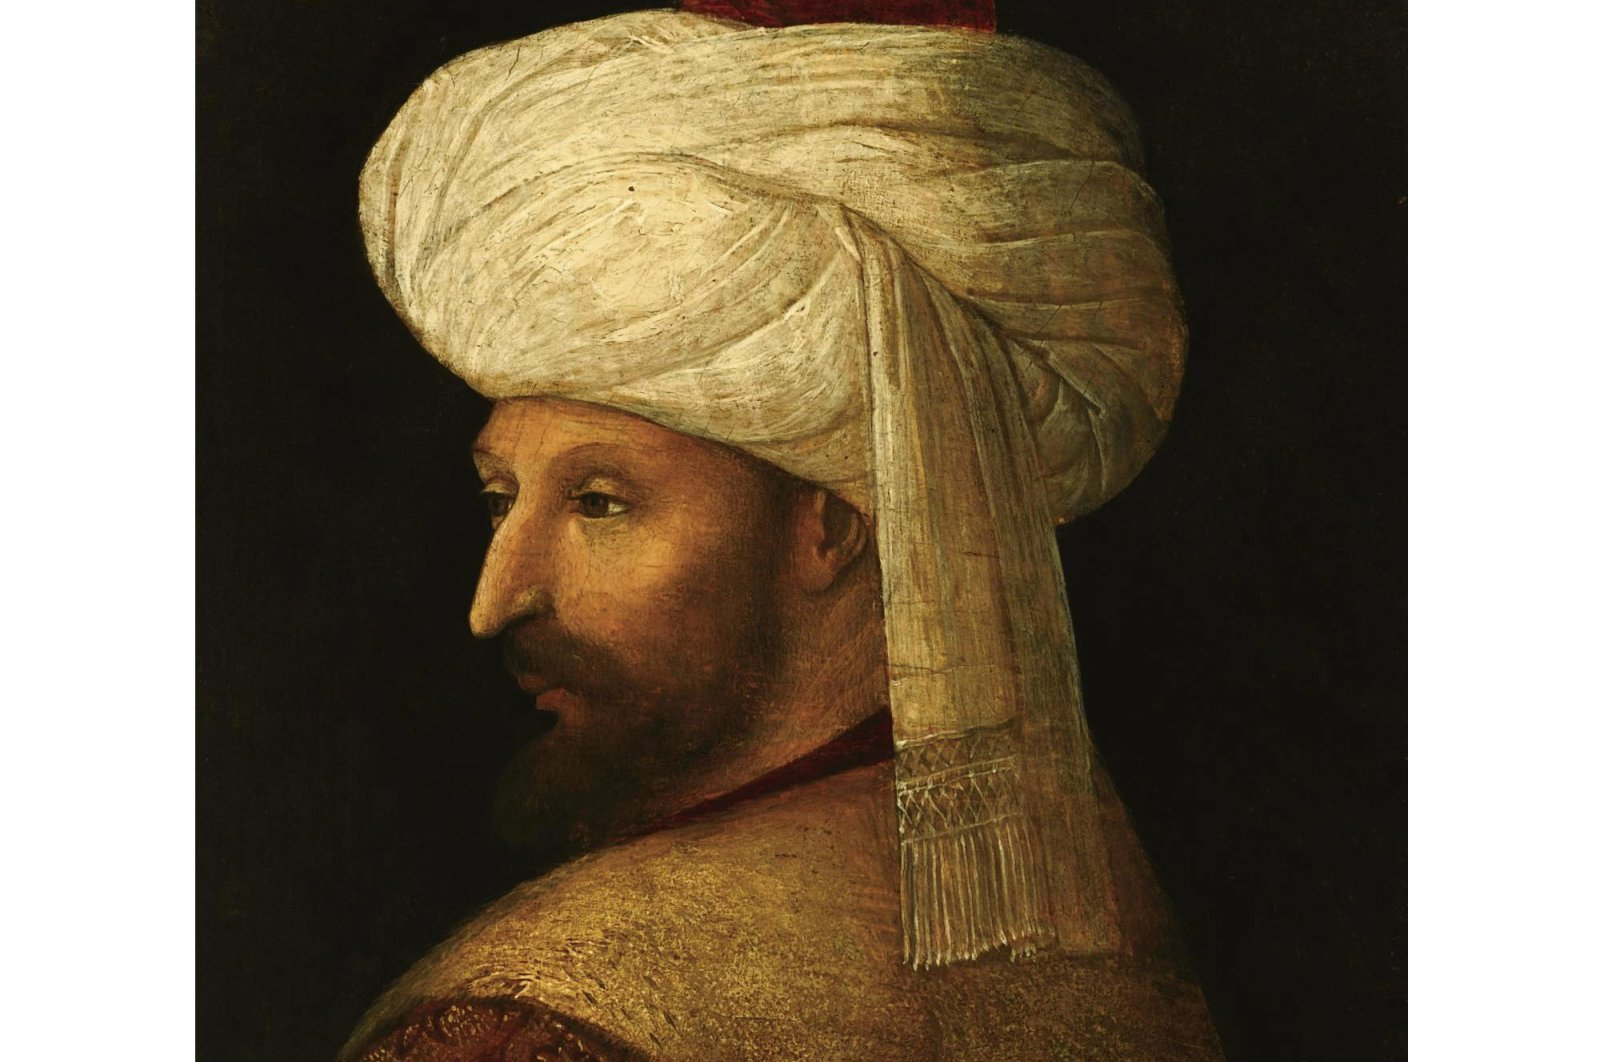 A portrait of Mehmed the Conqueror by Italian painter Gentile Bellini.